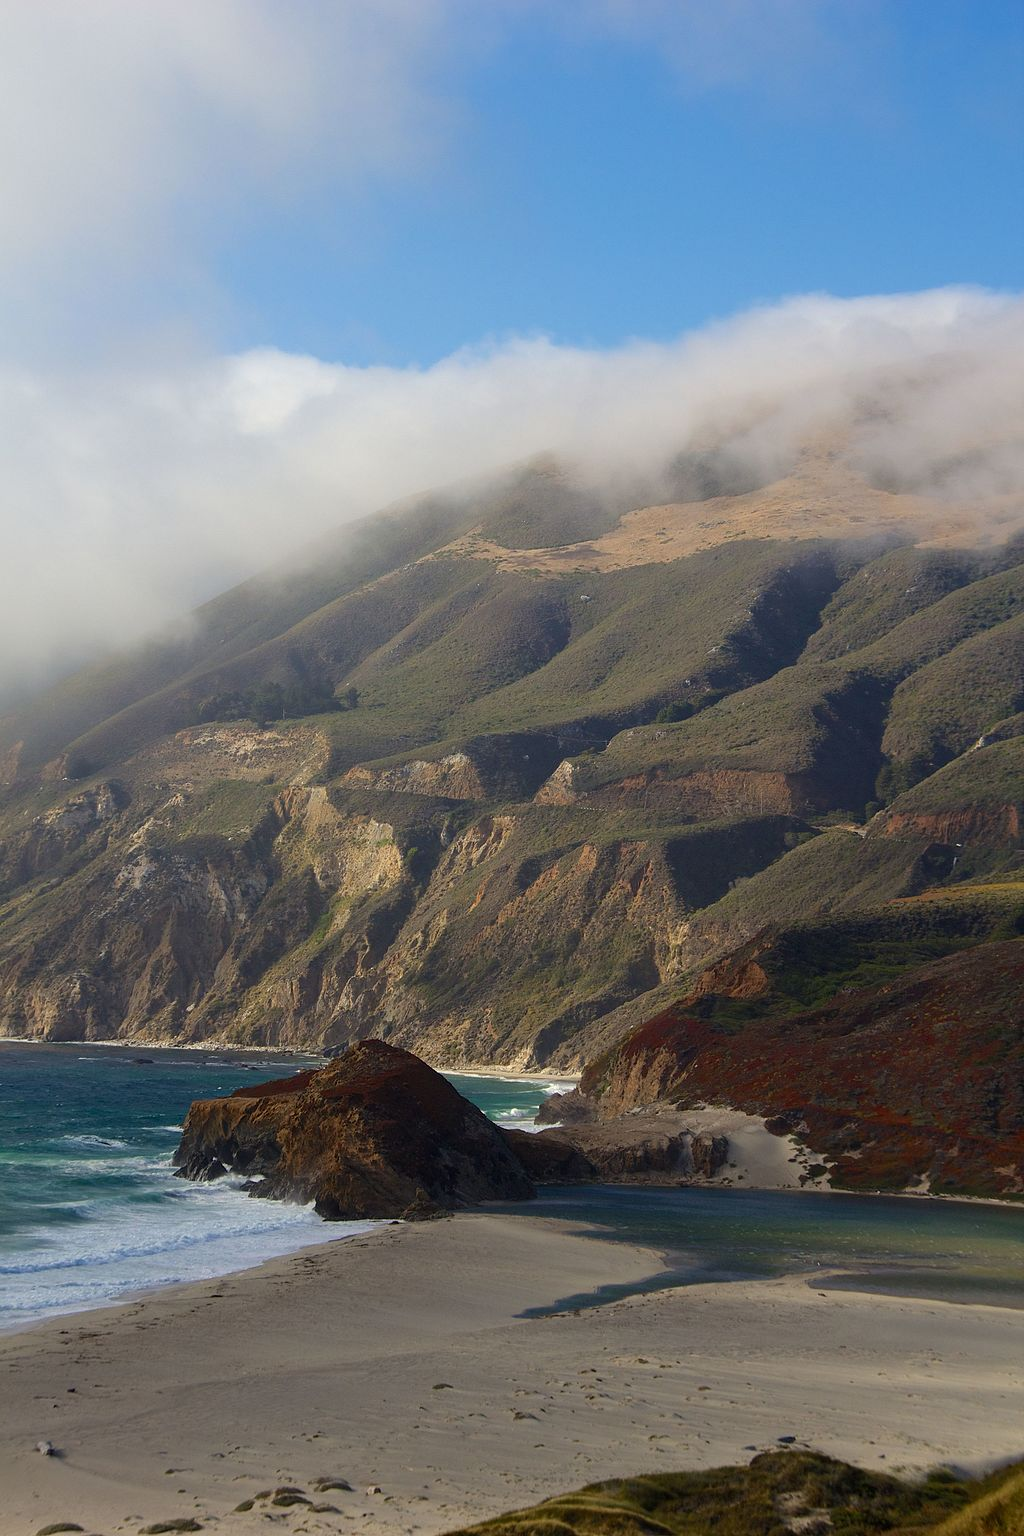 View from Highway 1, California 21